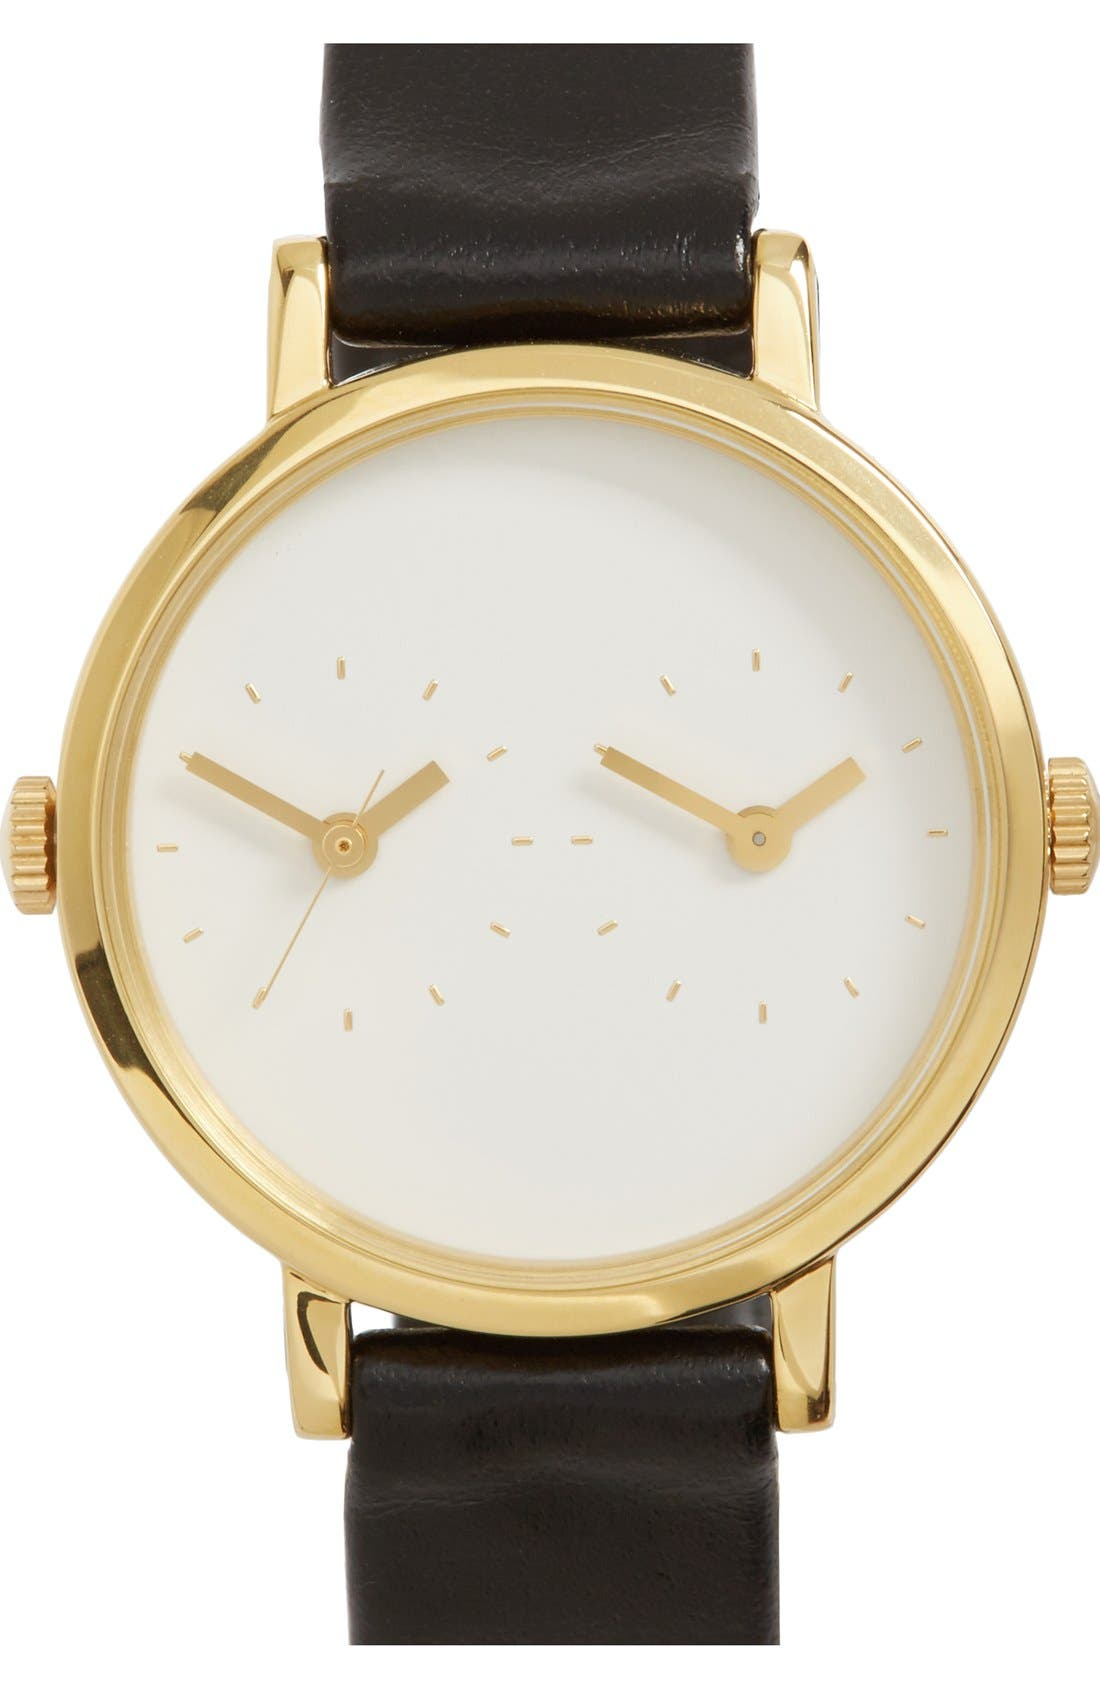 Main Image - Steven Alan 'Time Traveler' Round Leather Strap Watch, 30mm